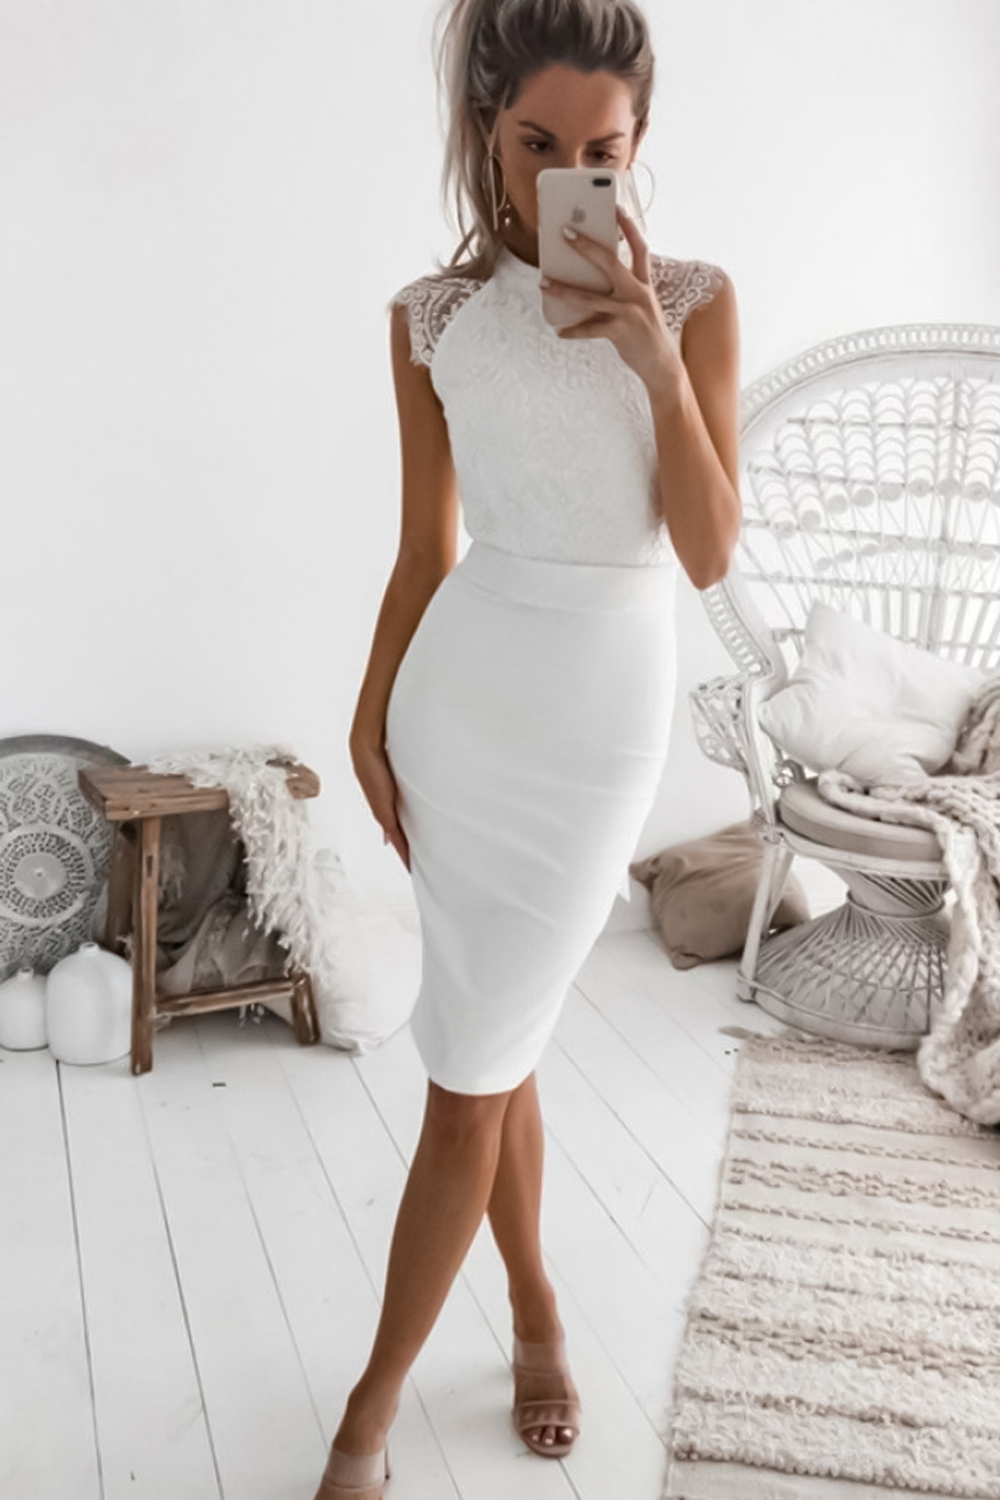 woman in a tight dress is posing in a room and taking selfie